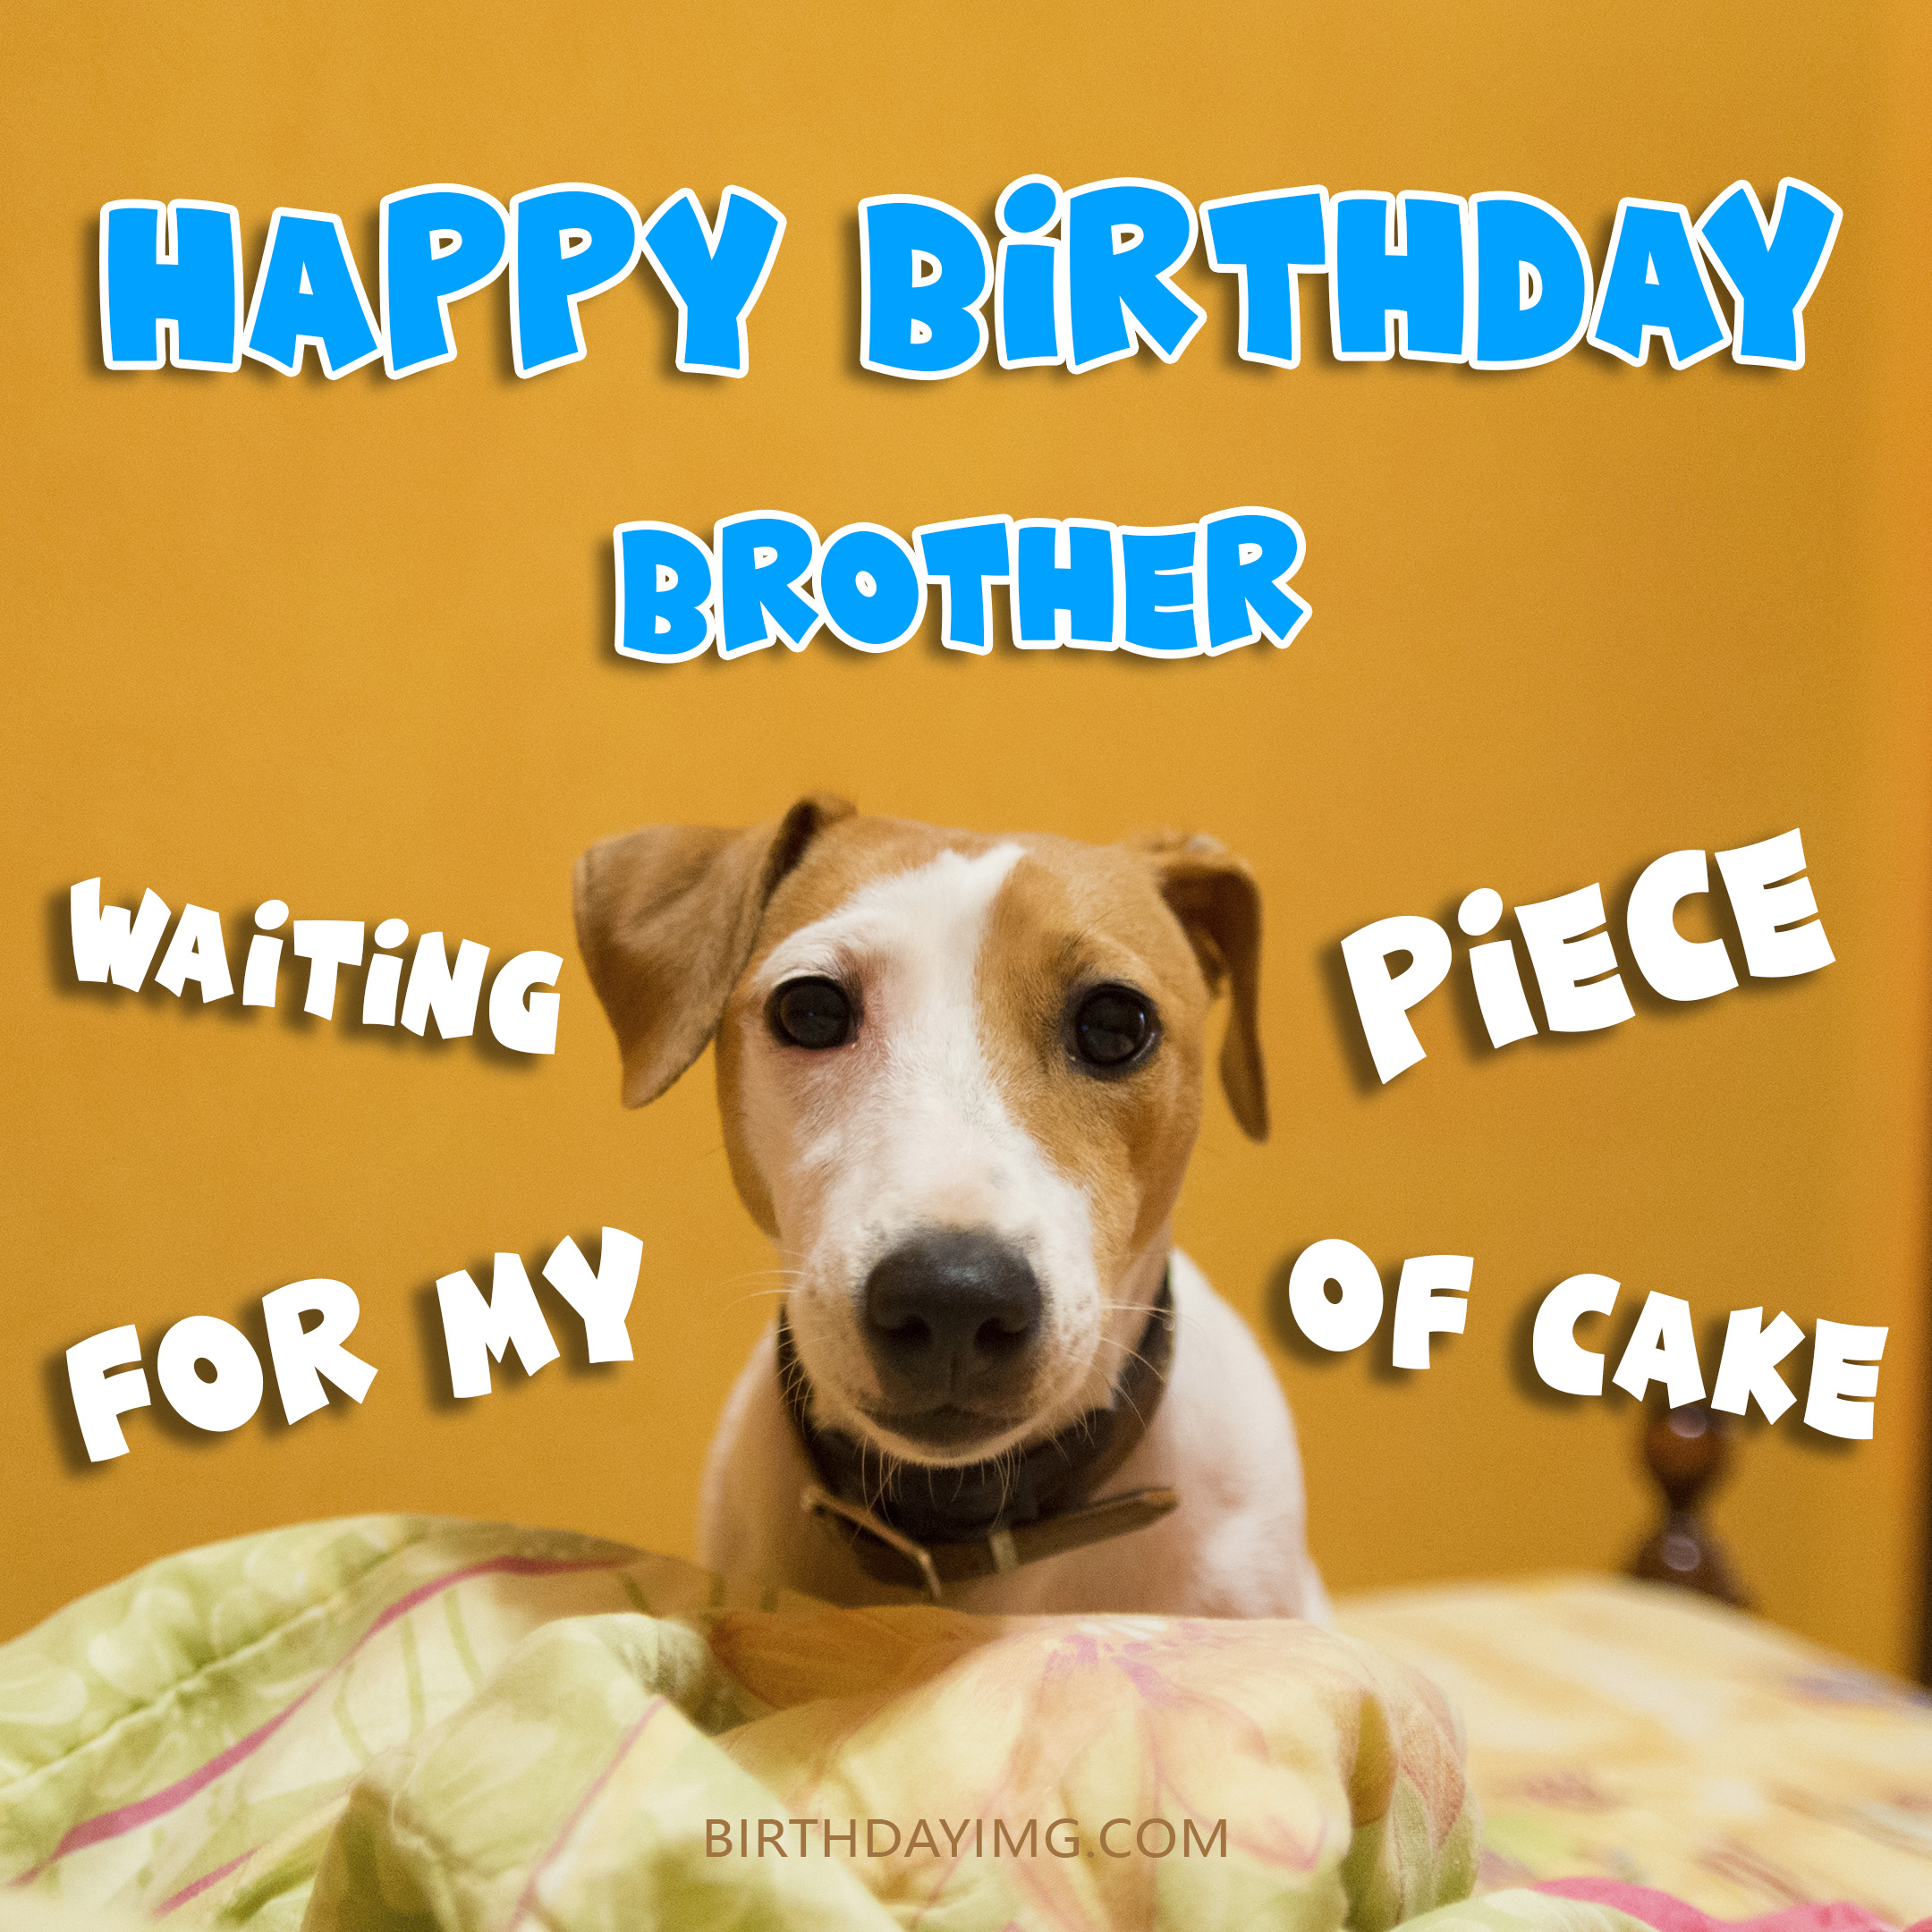 Free Funny Happy Birthday Image For Brother With Ginger Dog - birthdayimg.com